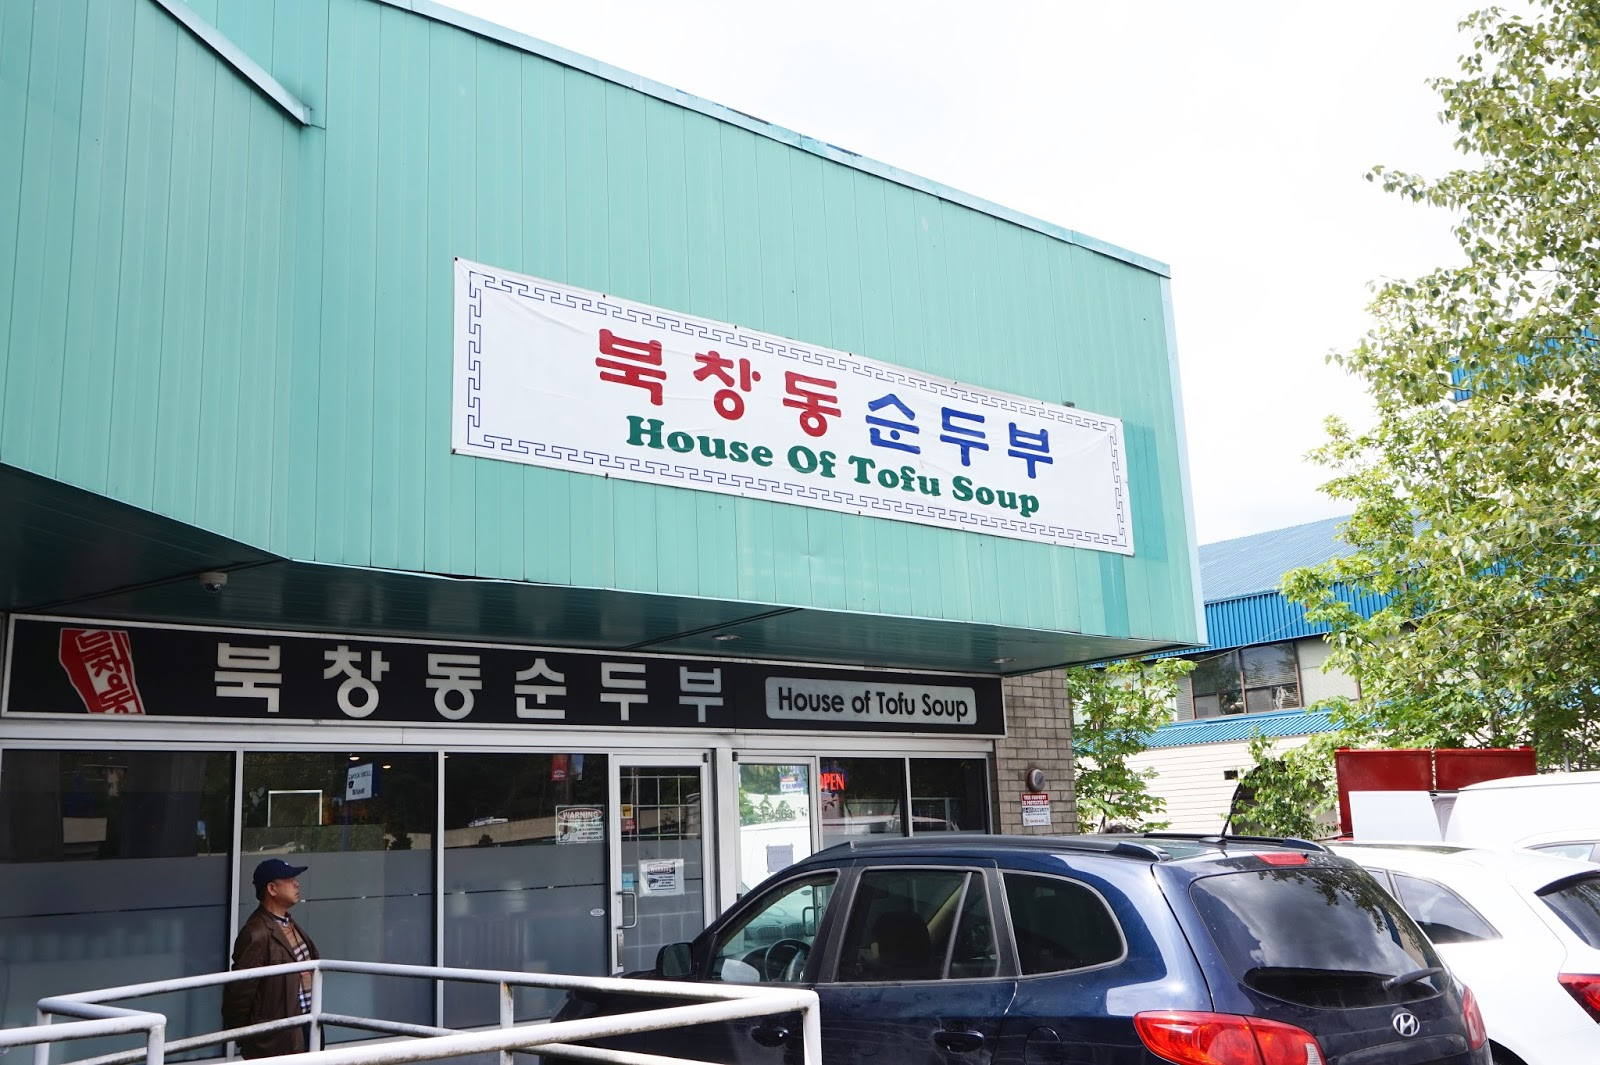 Vancity Noms: House of Tofu Soup - Coquitlam location!